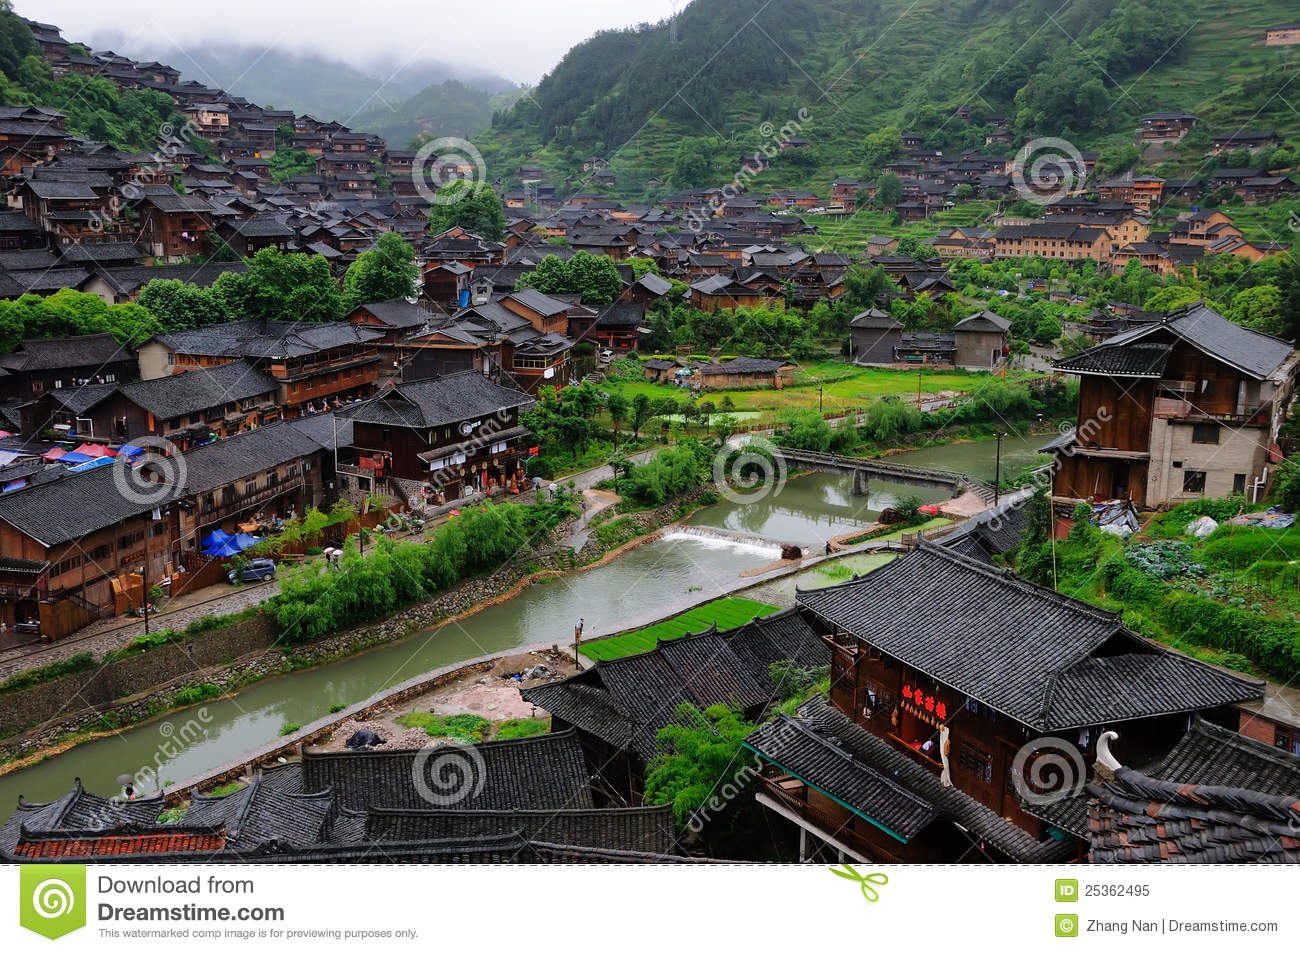 The Miao national minority people live place